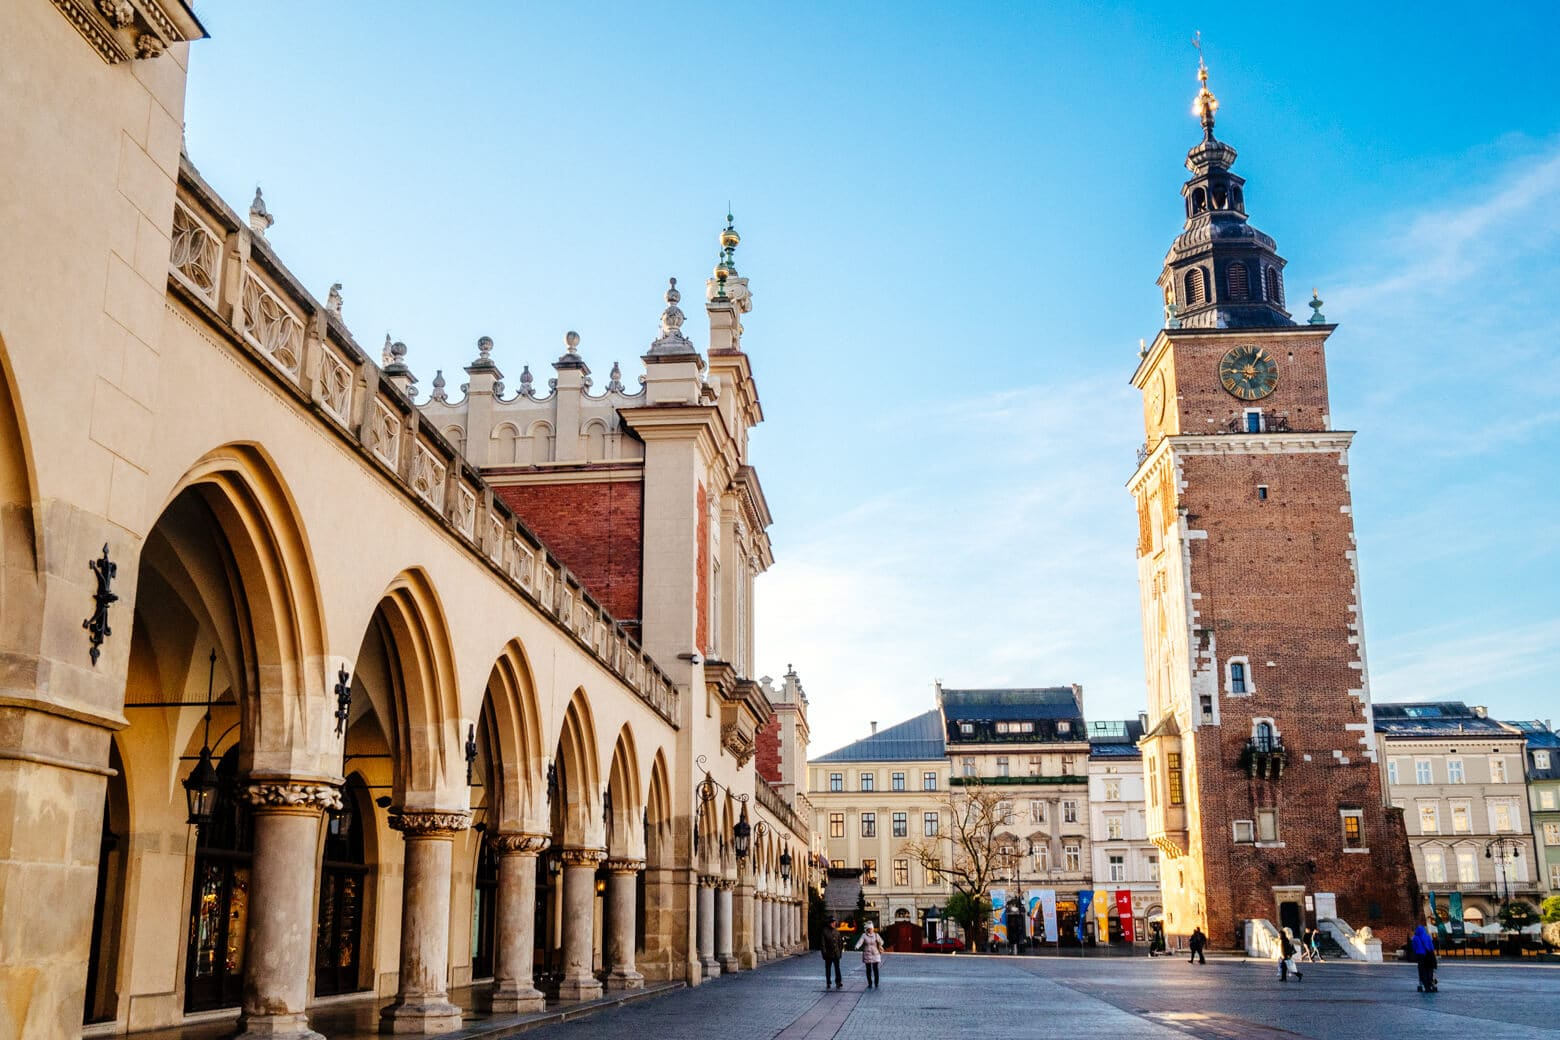 Krakow Main Square and Cloth Hall